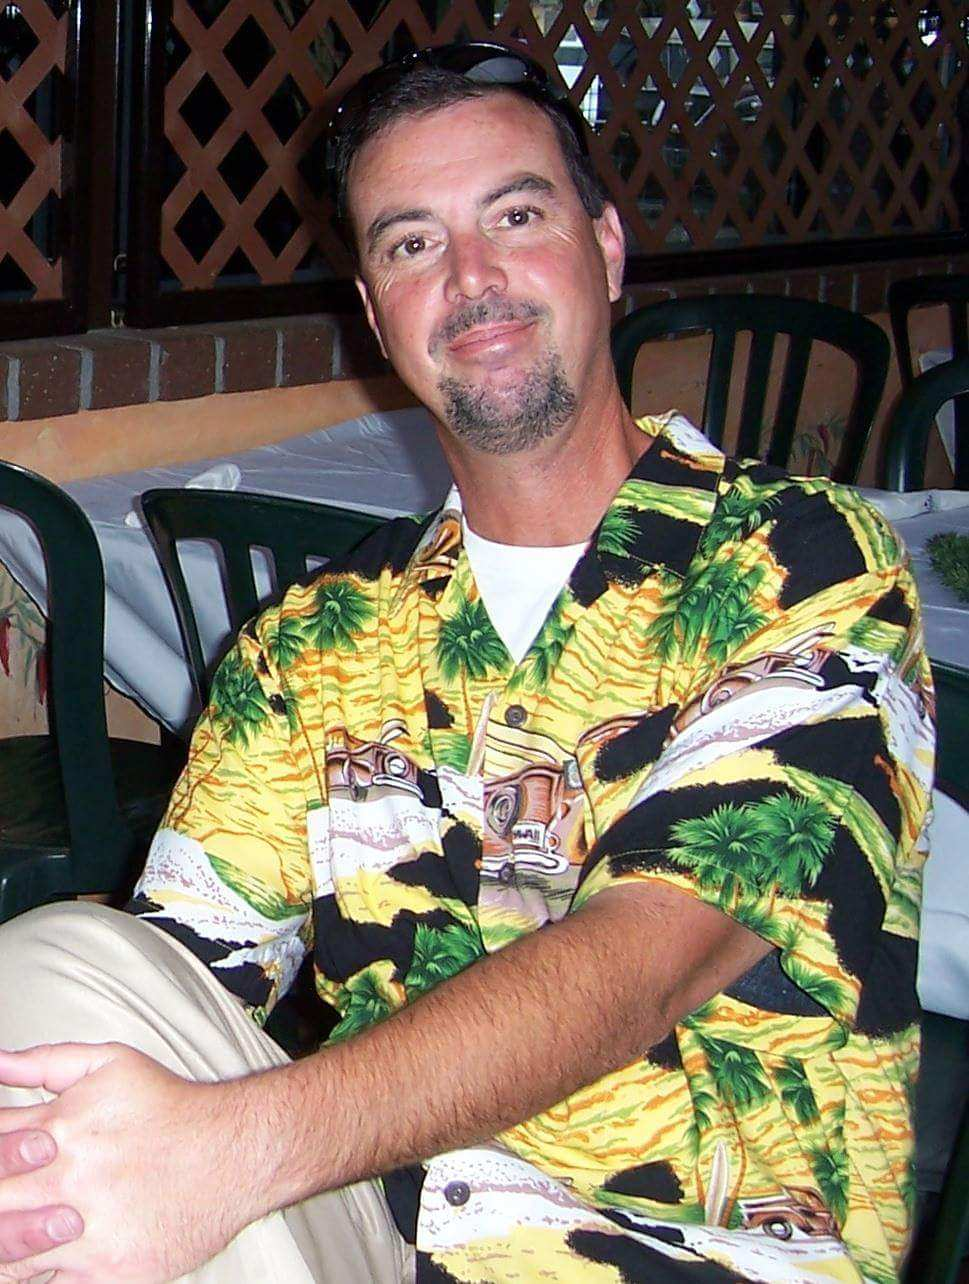 Mr. Brett Ropes, Cam High Social Science teacher and coach, passed away last month. He was 45 years old.